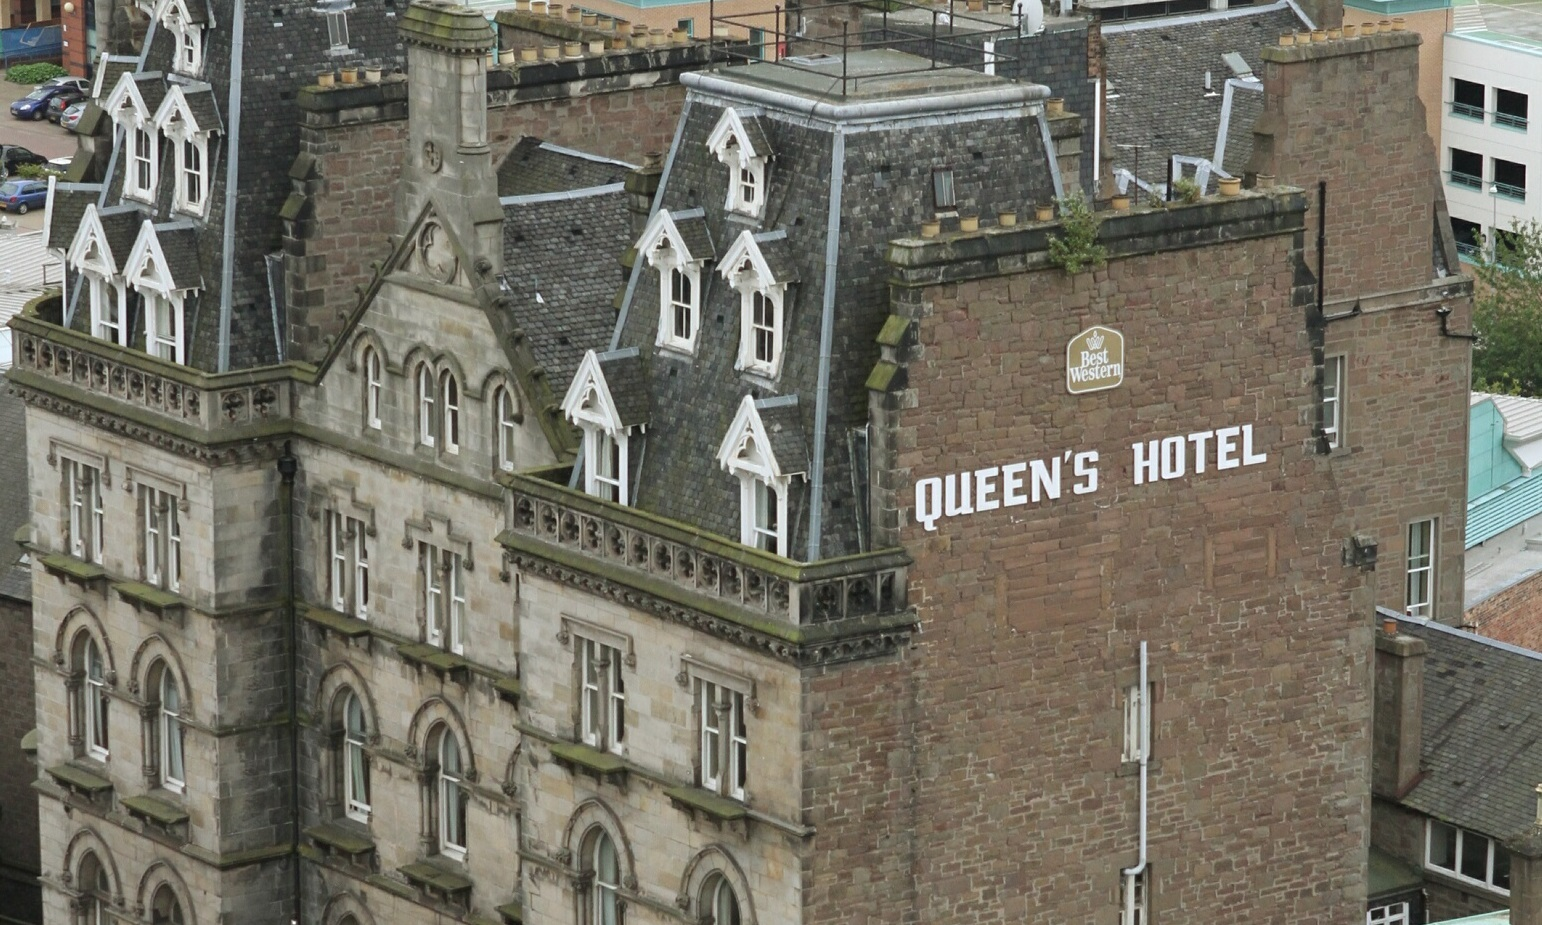 fire crews were called to the Queen's Hotel on Saturday evening.